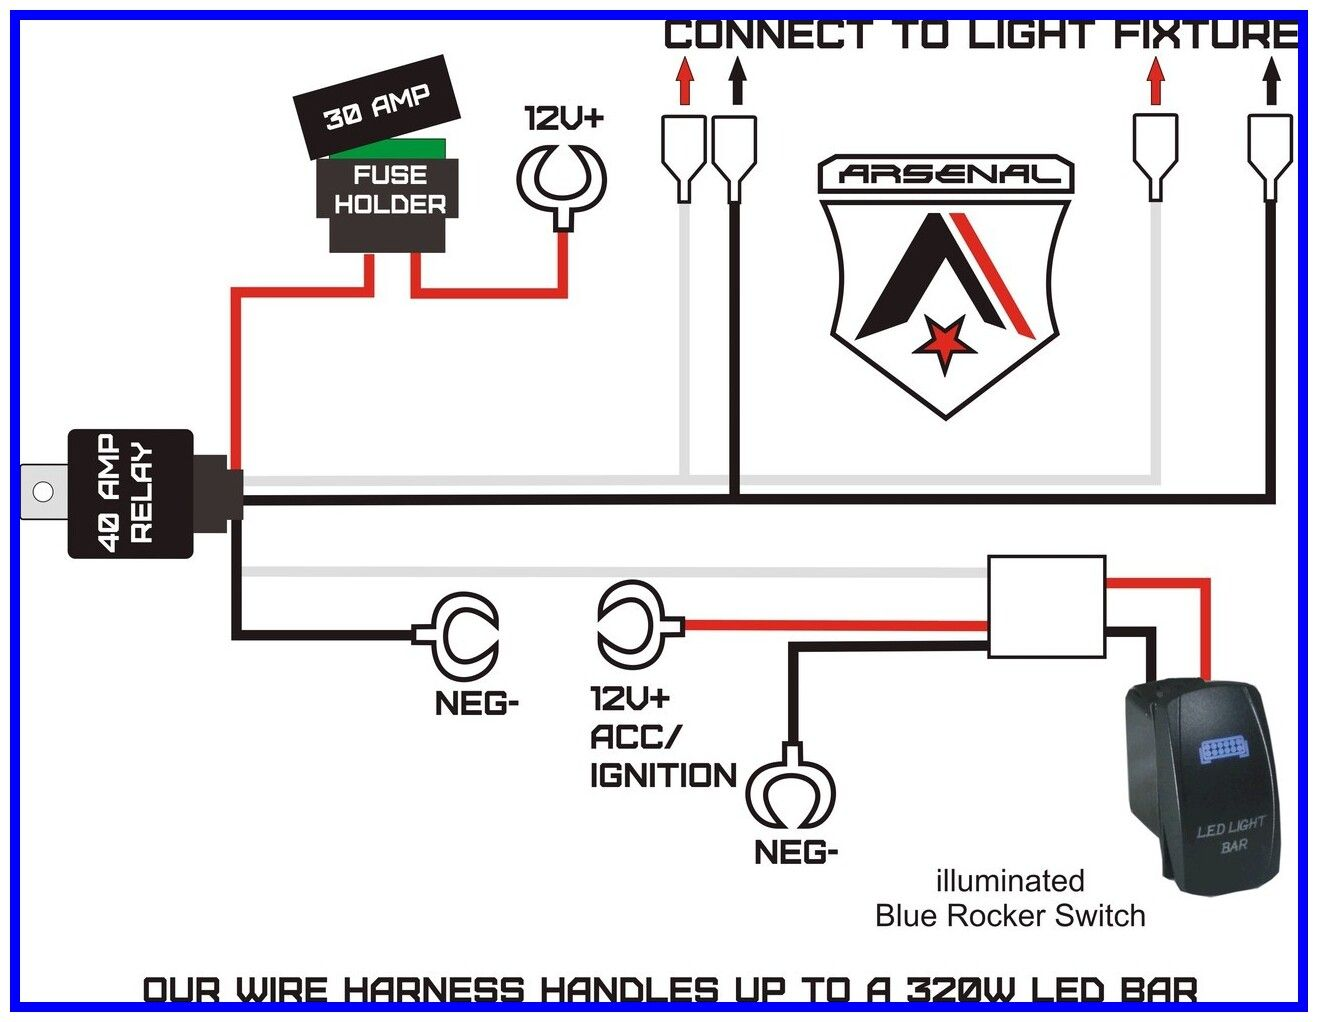 65 Reference Of Led Light Bar Wiring Instructions Bar Lighting Led Light Bars Led Lights